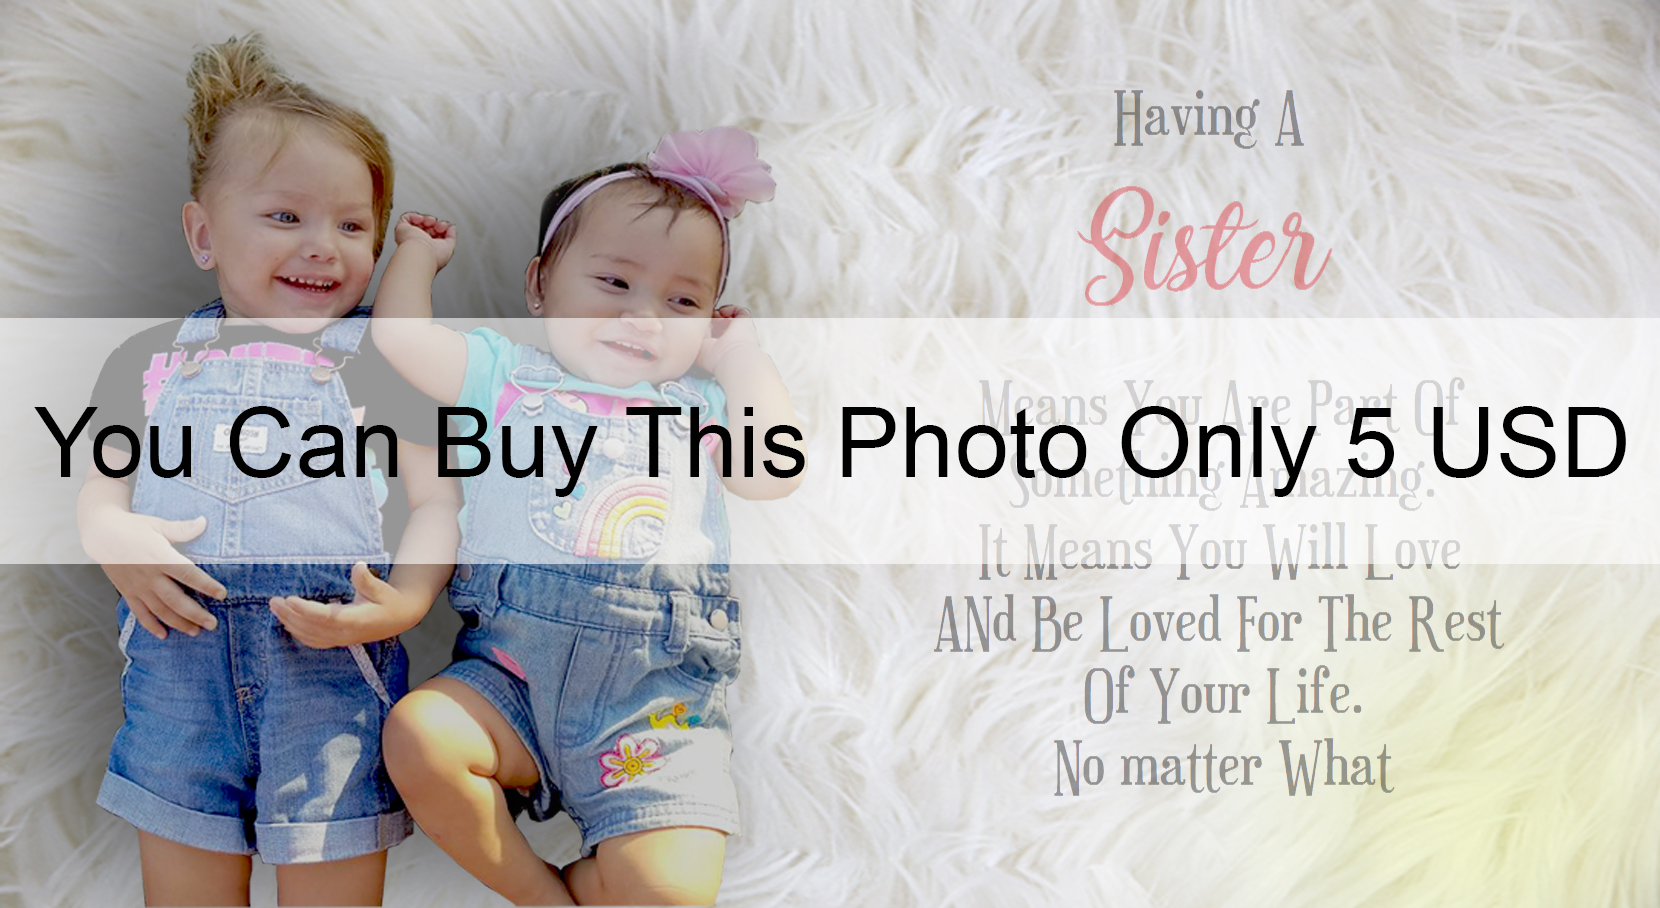 You Can Buy This Photo